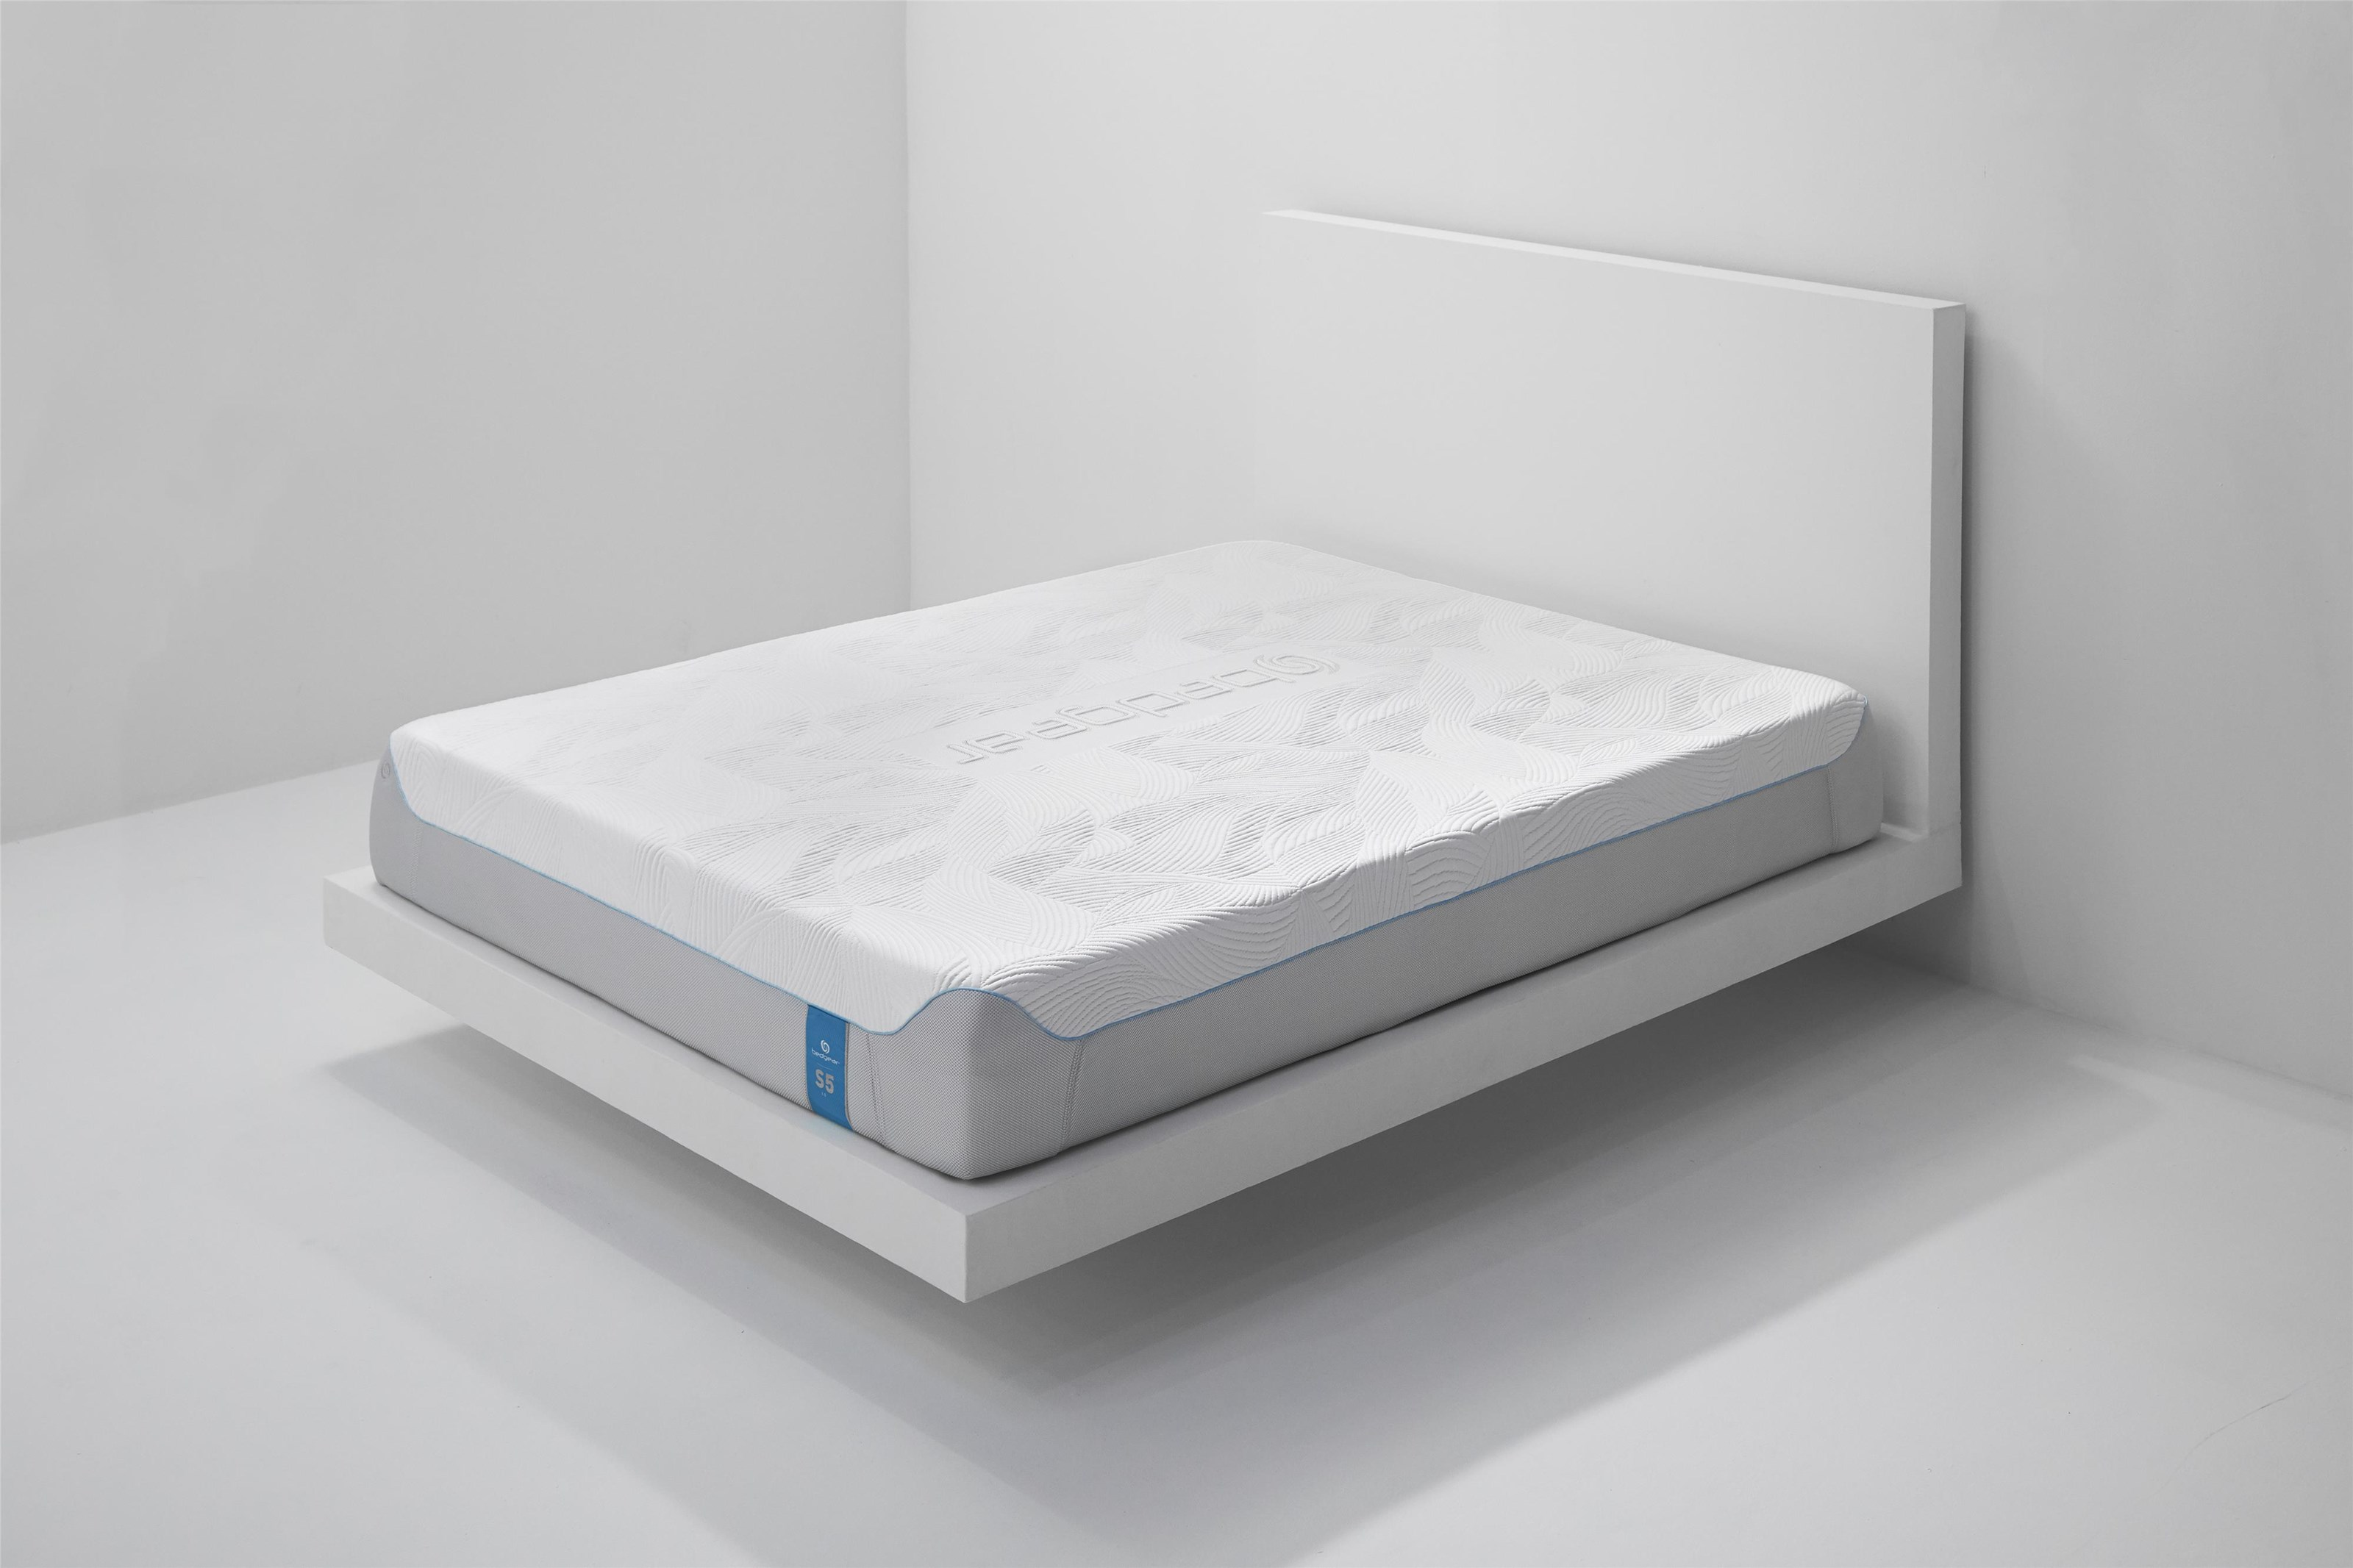 S5 S5 Full Mattress by Bedgear at Morris Home